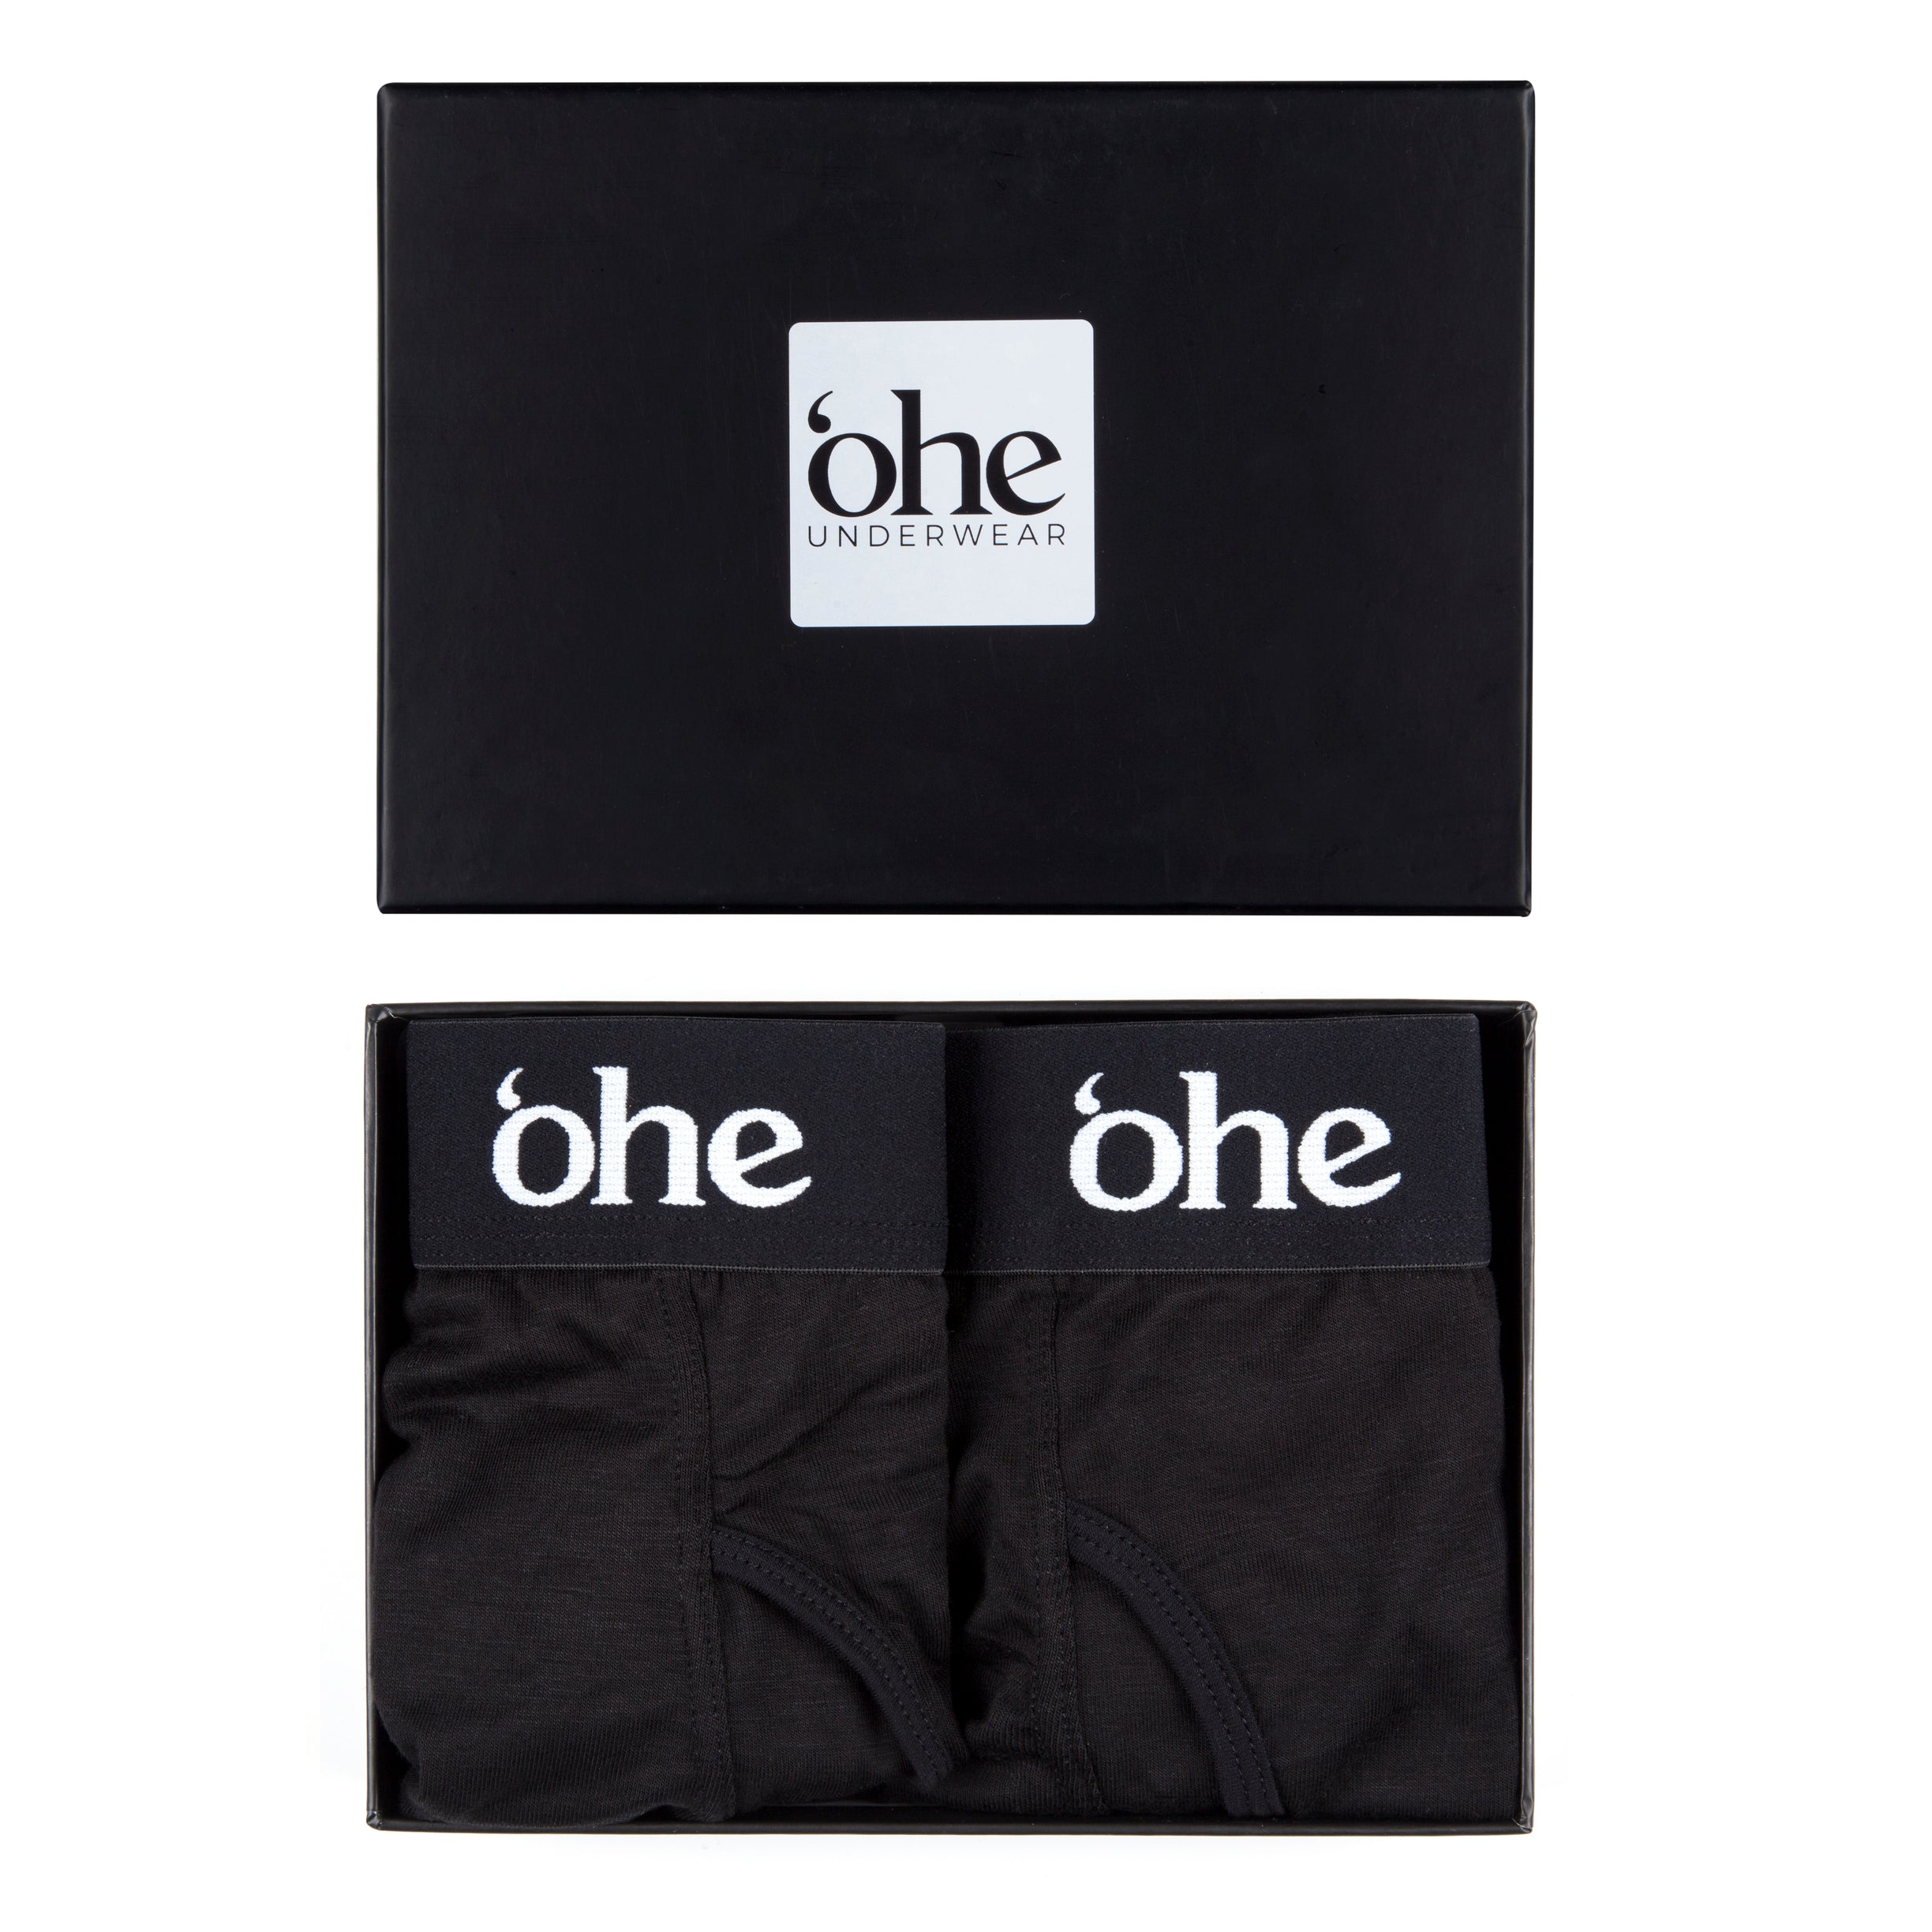 Two Pack Charcoal Bamboo Underwear - 'ohe underwear